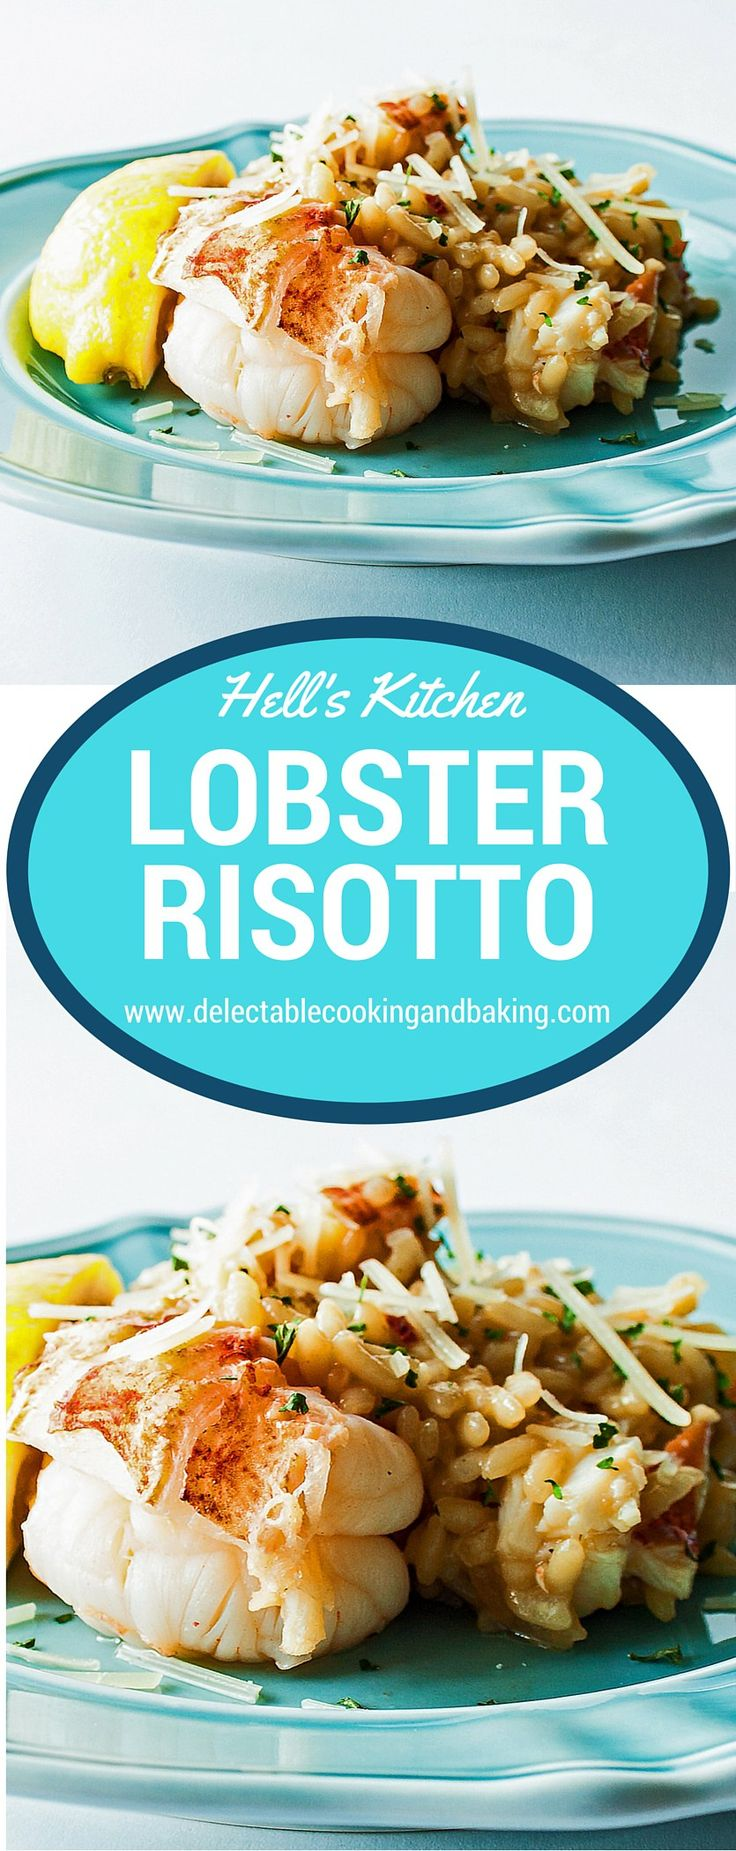 Gordon Ramsey Hell's Kitchen Lobster Risotto copycat at Delectable, www.delectablecookingandbaking.com